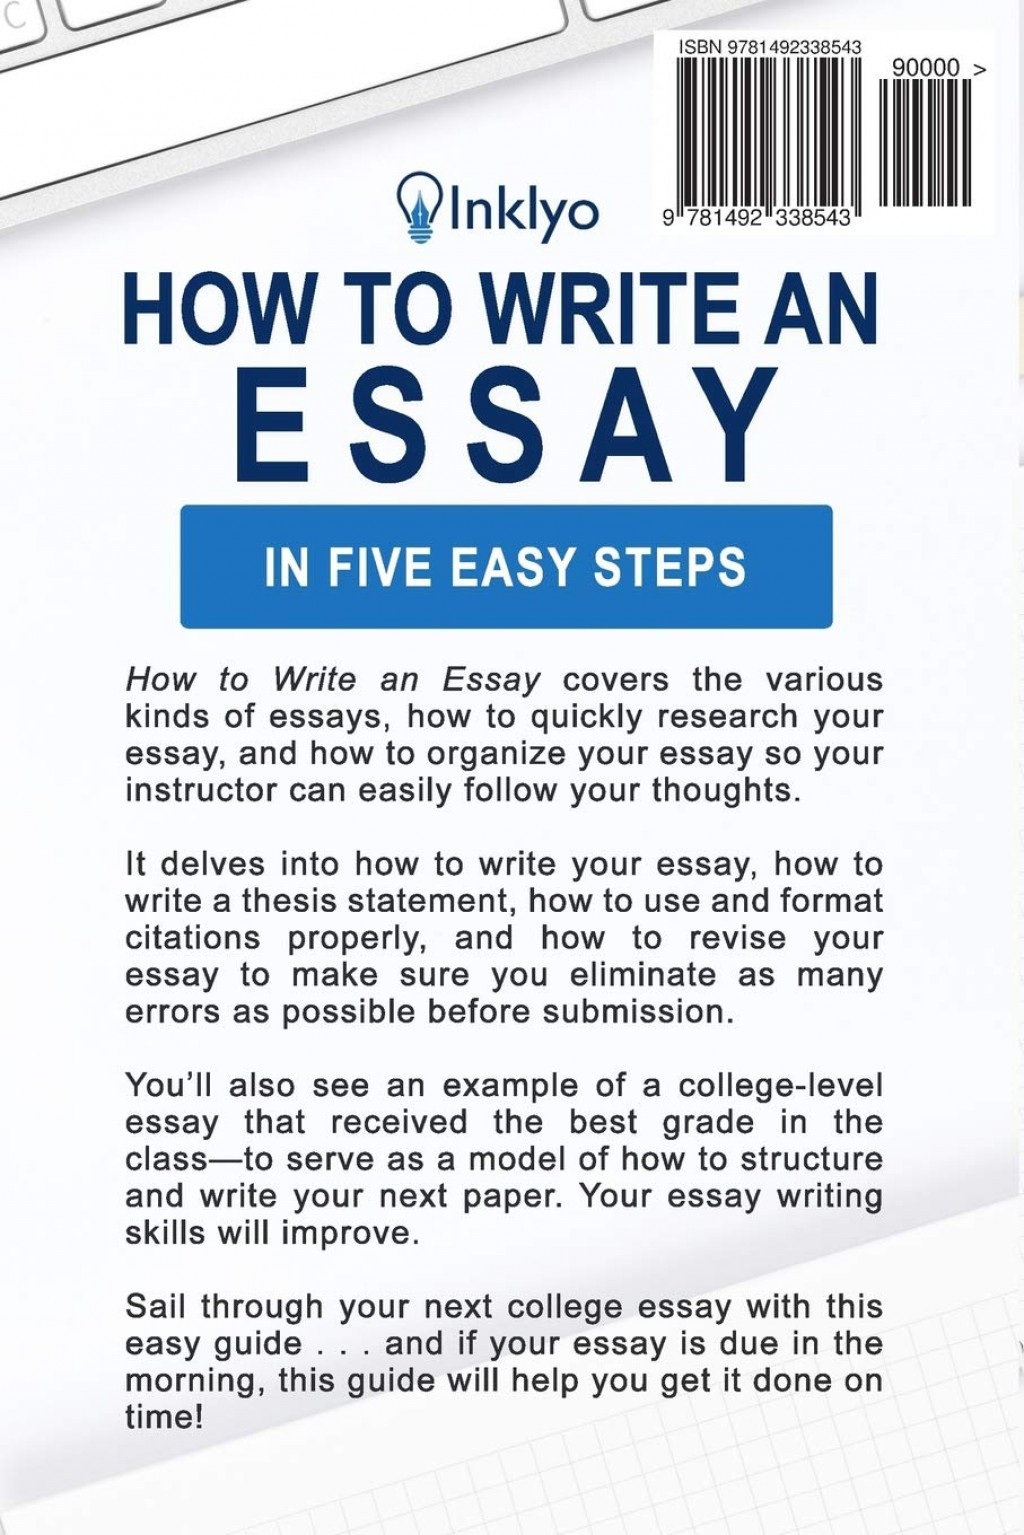 003 How To Write Essay Example Archaicawful A History Research Outline Introduction Large